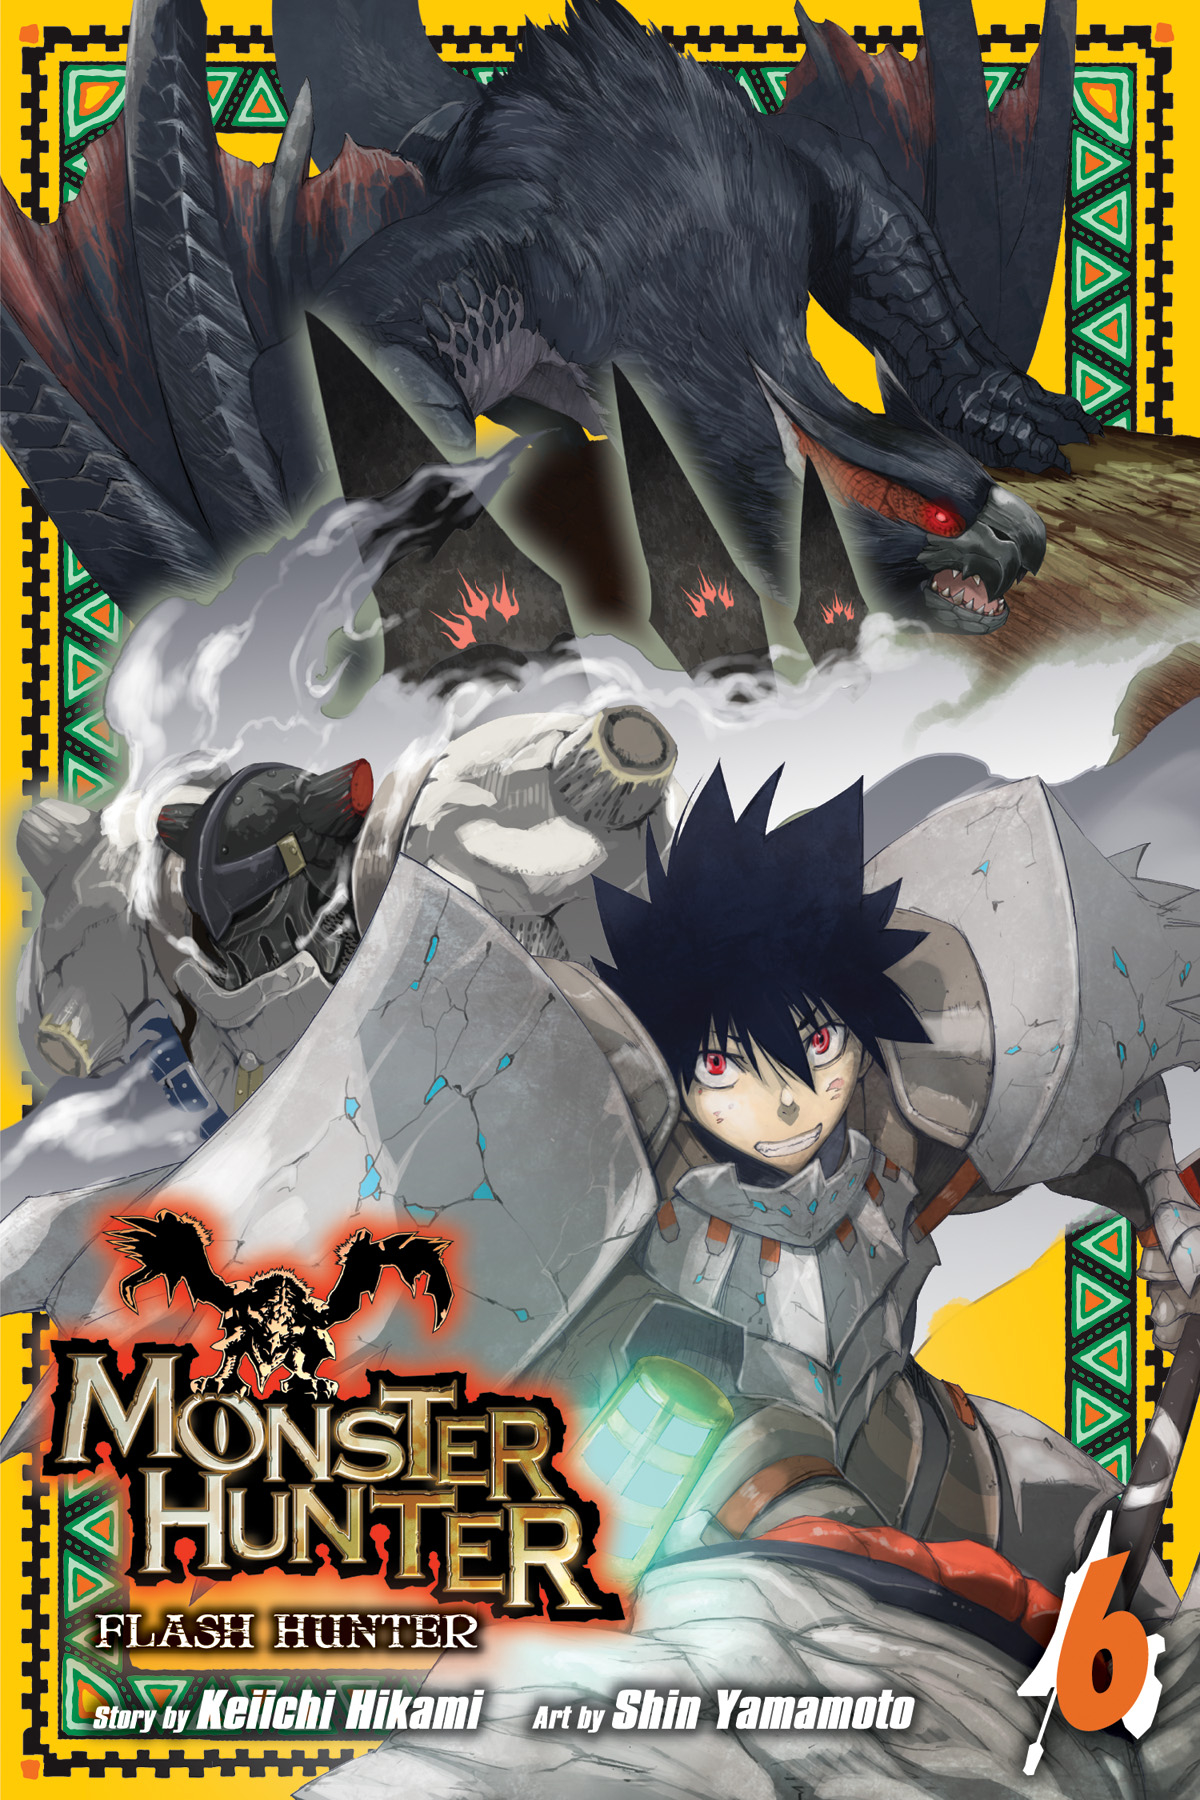 MONSTER HUNTER FLASH HUNTER GN VOL 06